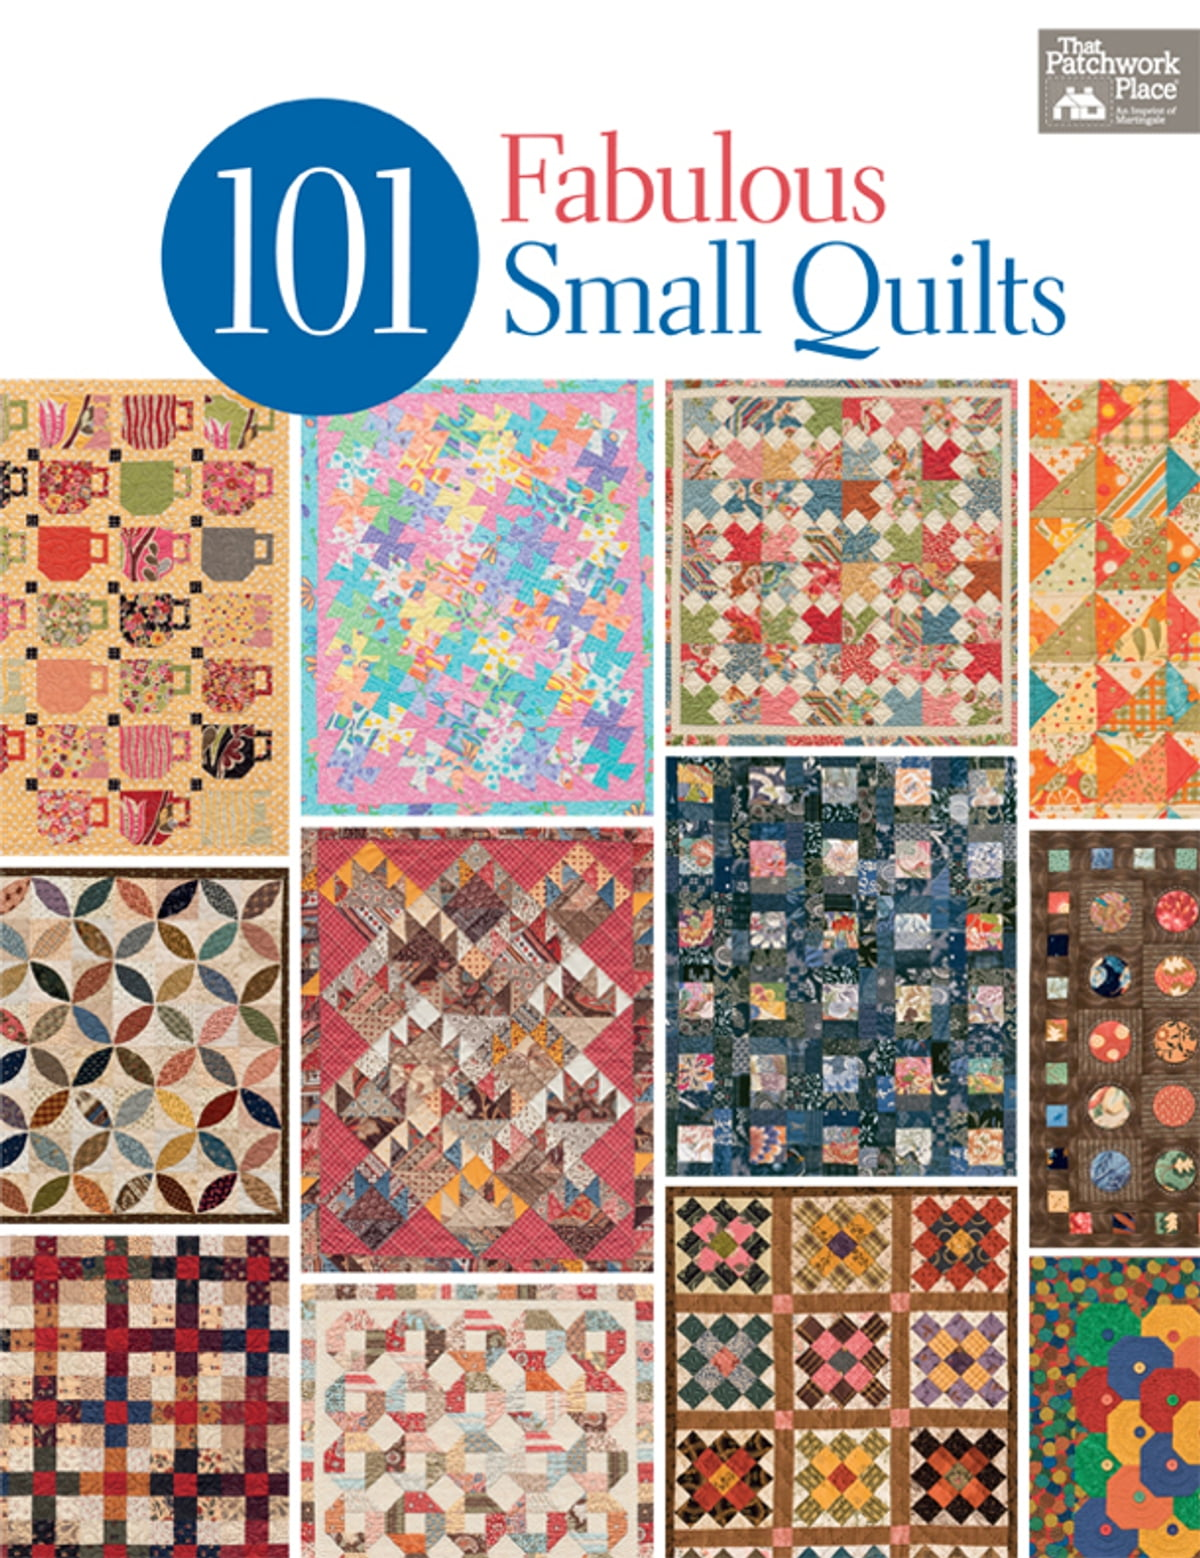 101 Fabulous Small Quilts eBook by That Patchwork Place - 9781604682694 |  Rakuten Kobo